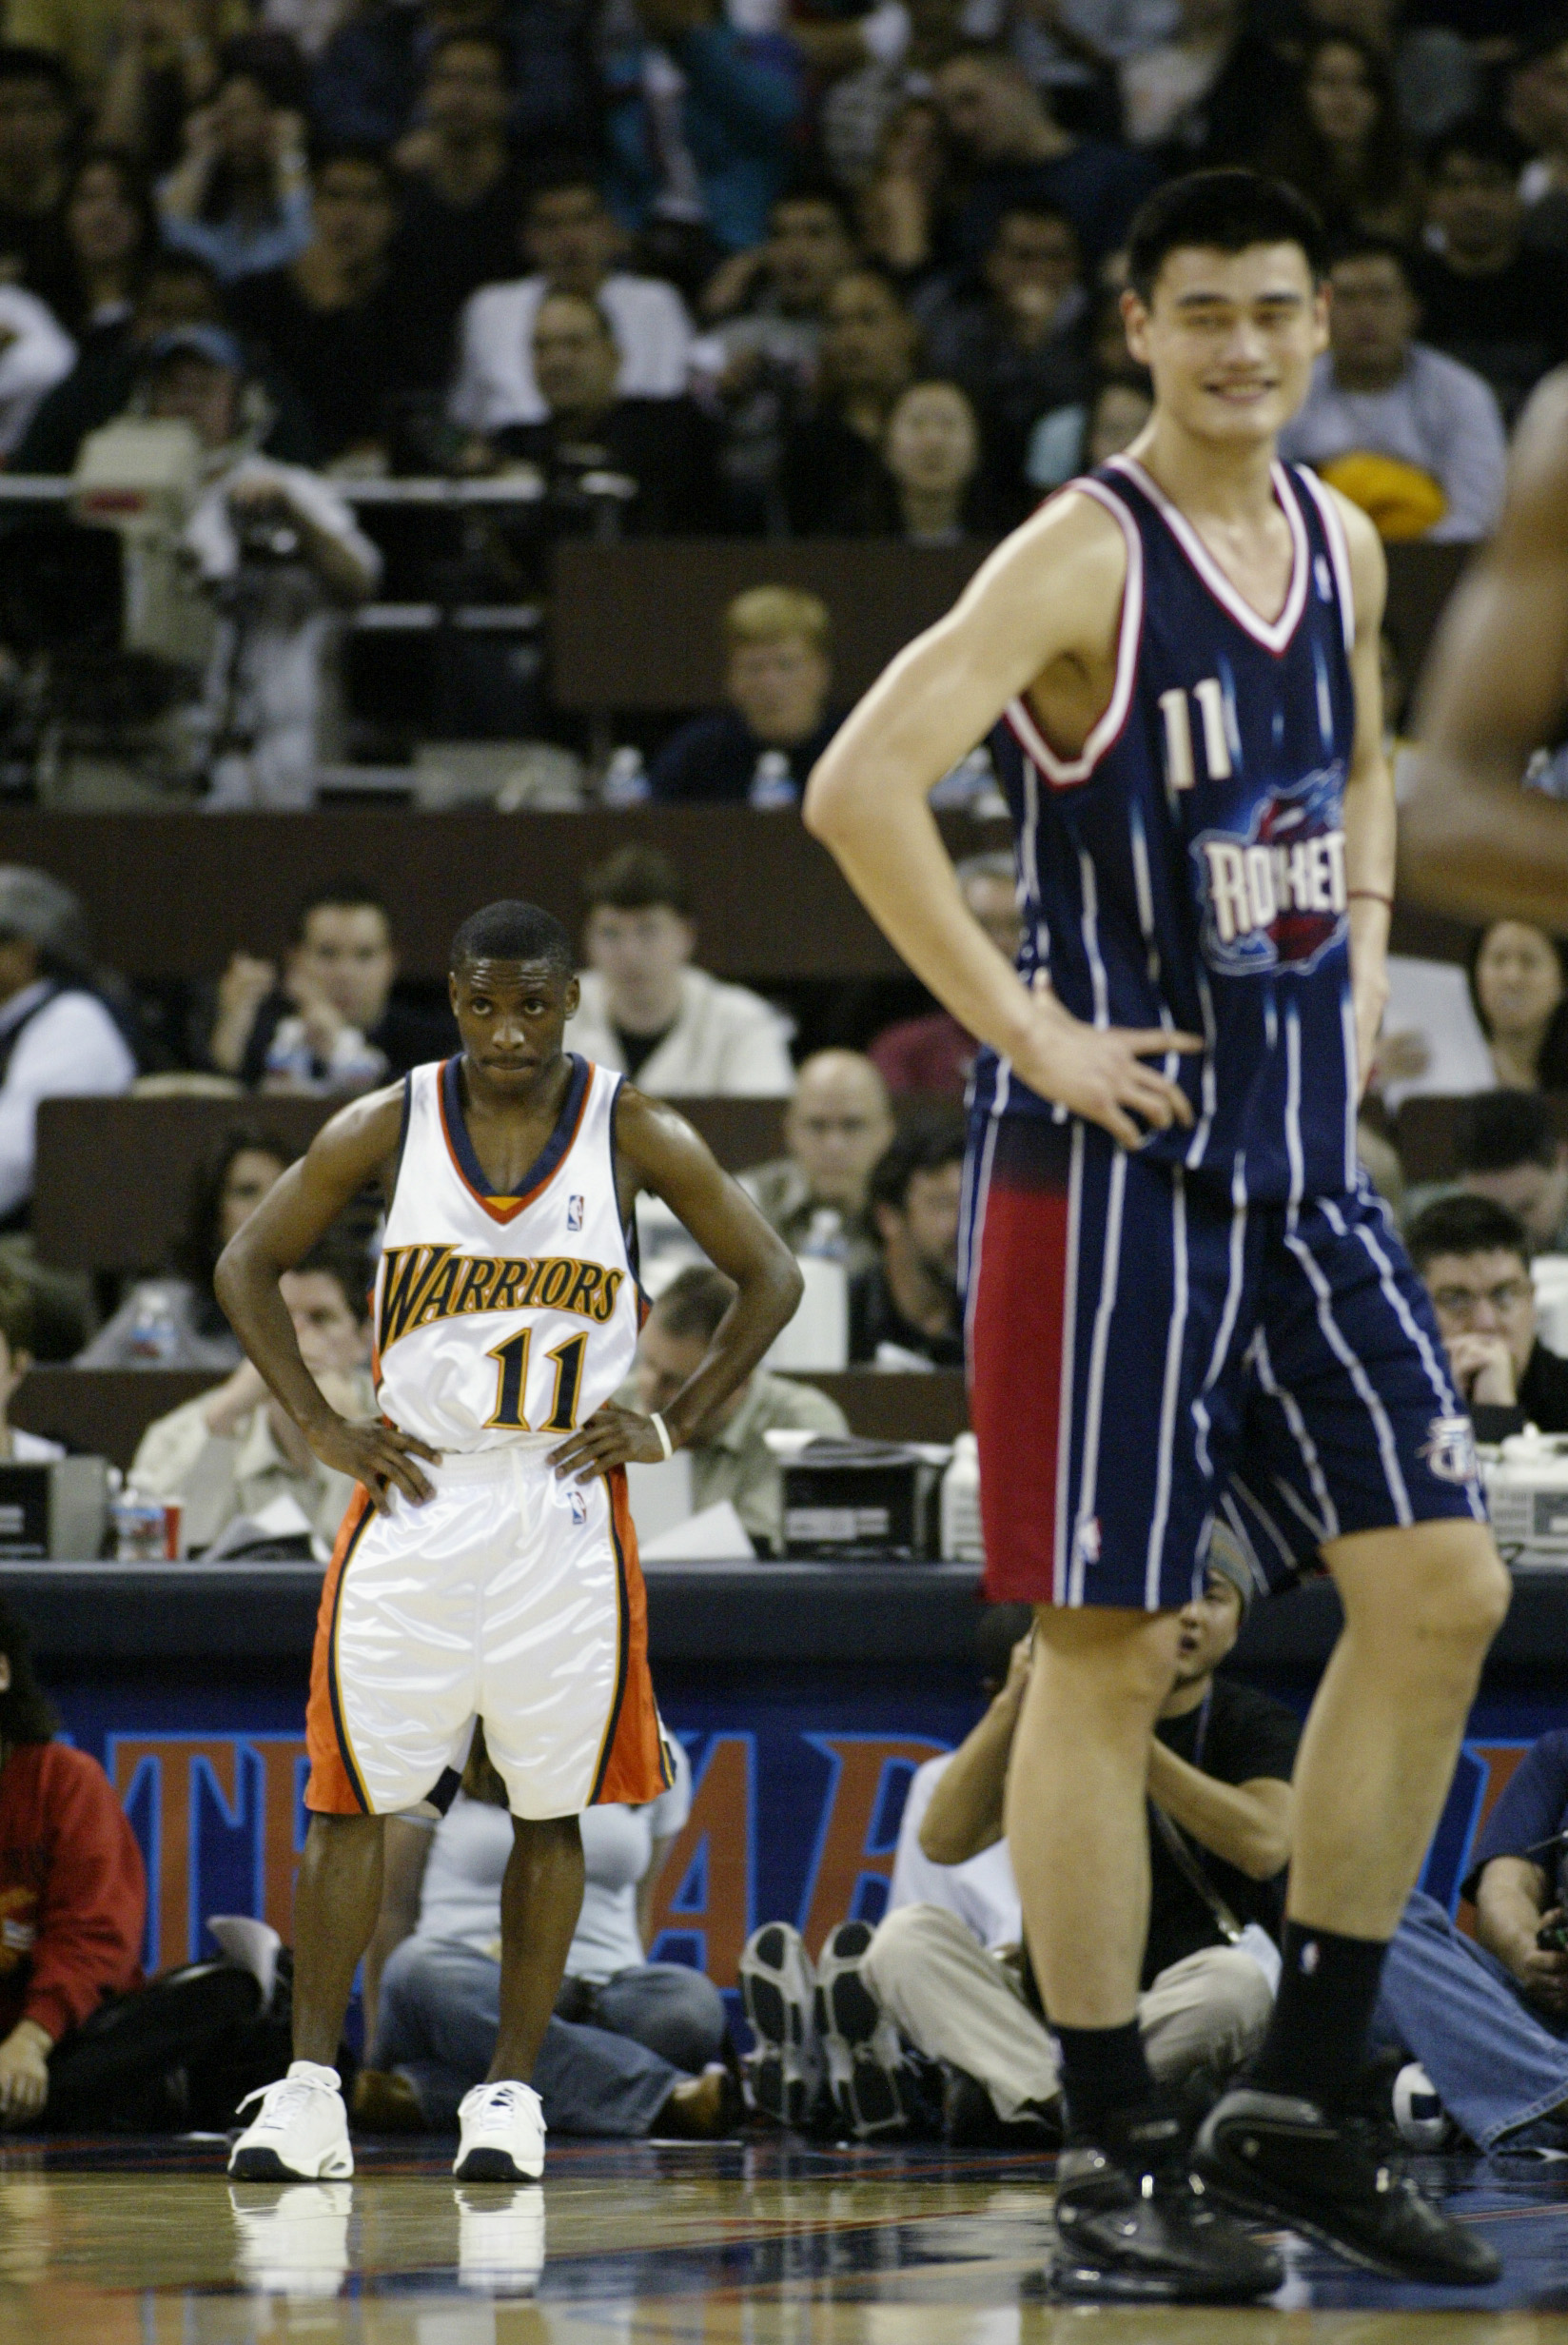 OAKLAND, CA - MARCH 21:  Earl Boykins #11 of the Golden State Warriors and Yao Ming #11 of the Houston Rockets rest during the game at The Arena in Oakland on March 21, 2003 in Oakland, California.  The Rockets won 117-107.  NOTE TO USER: User expressly a